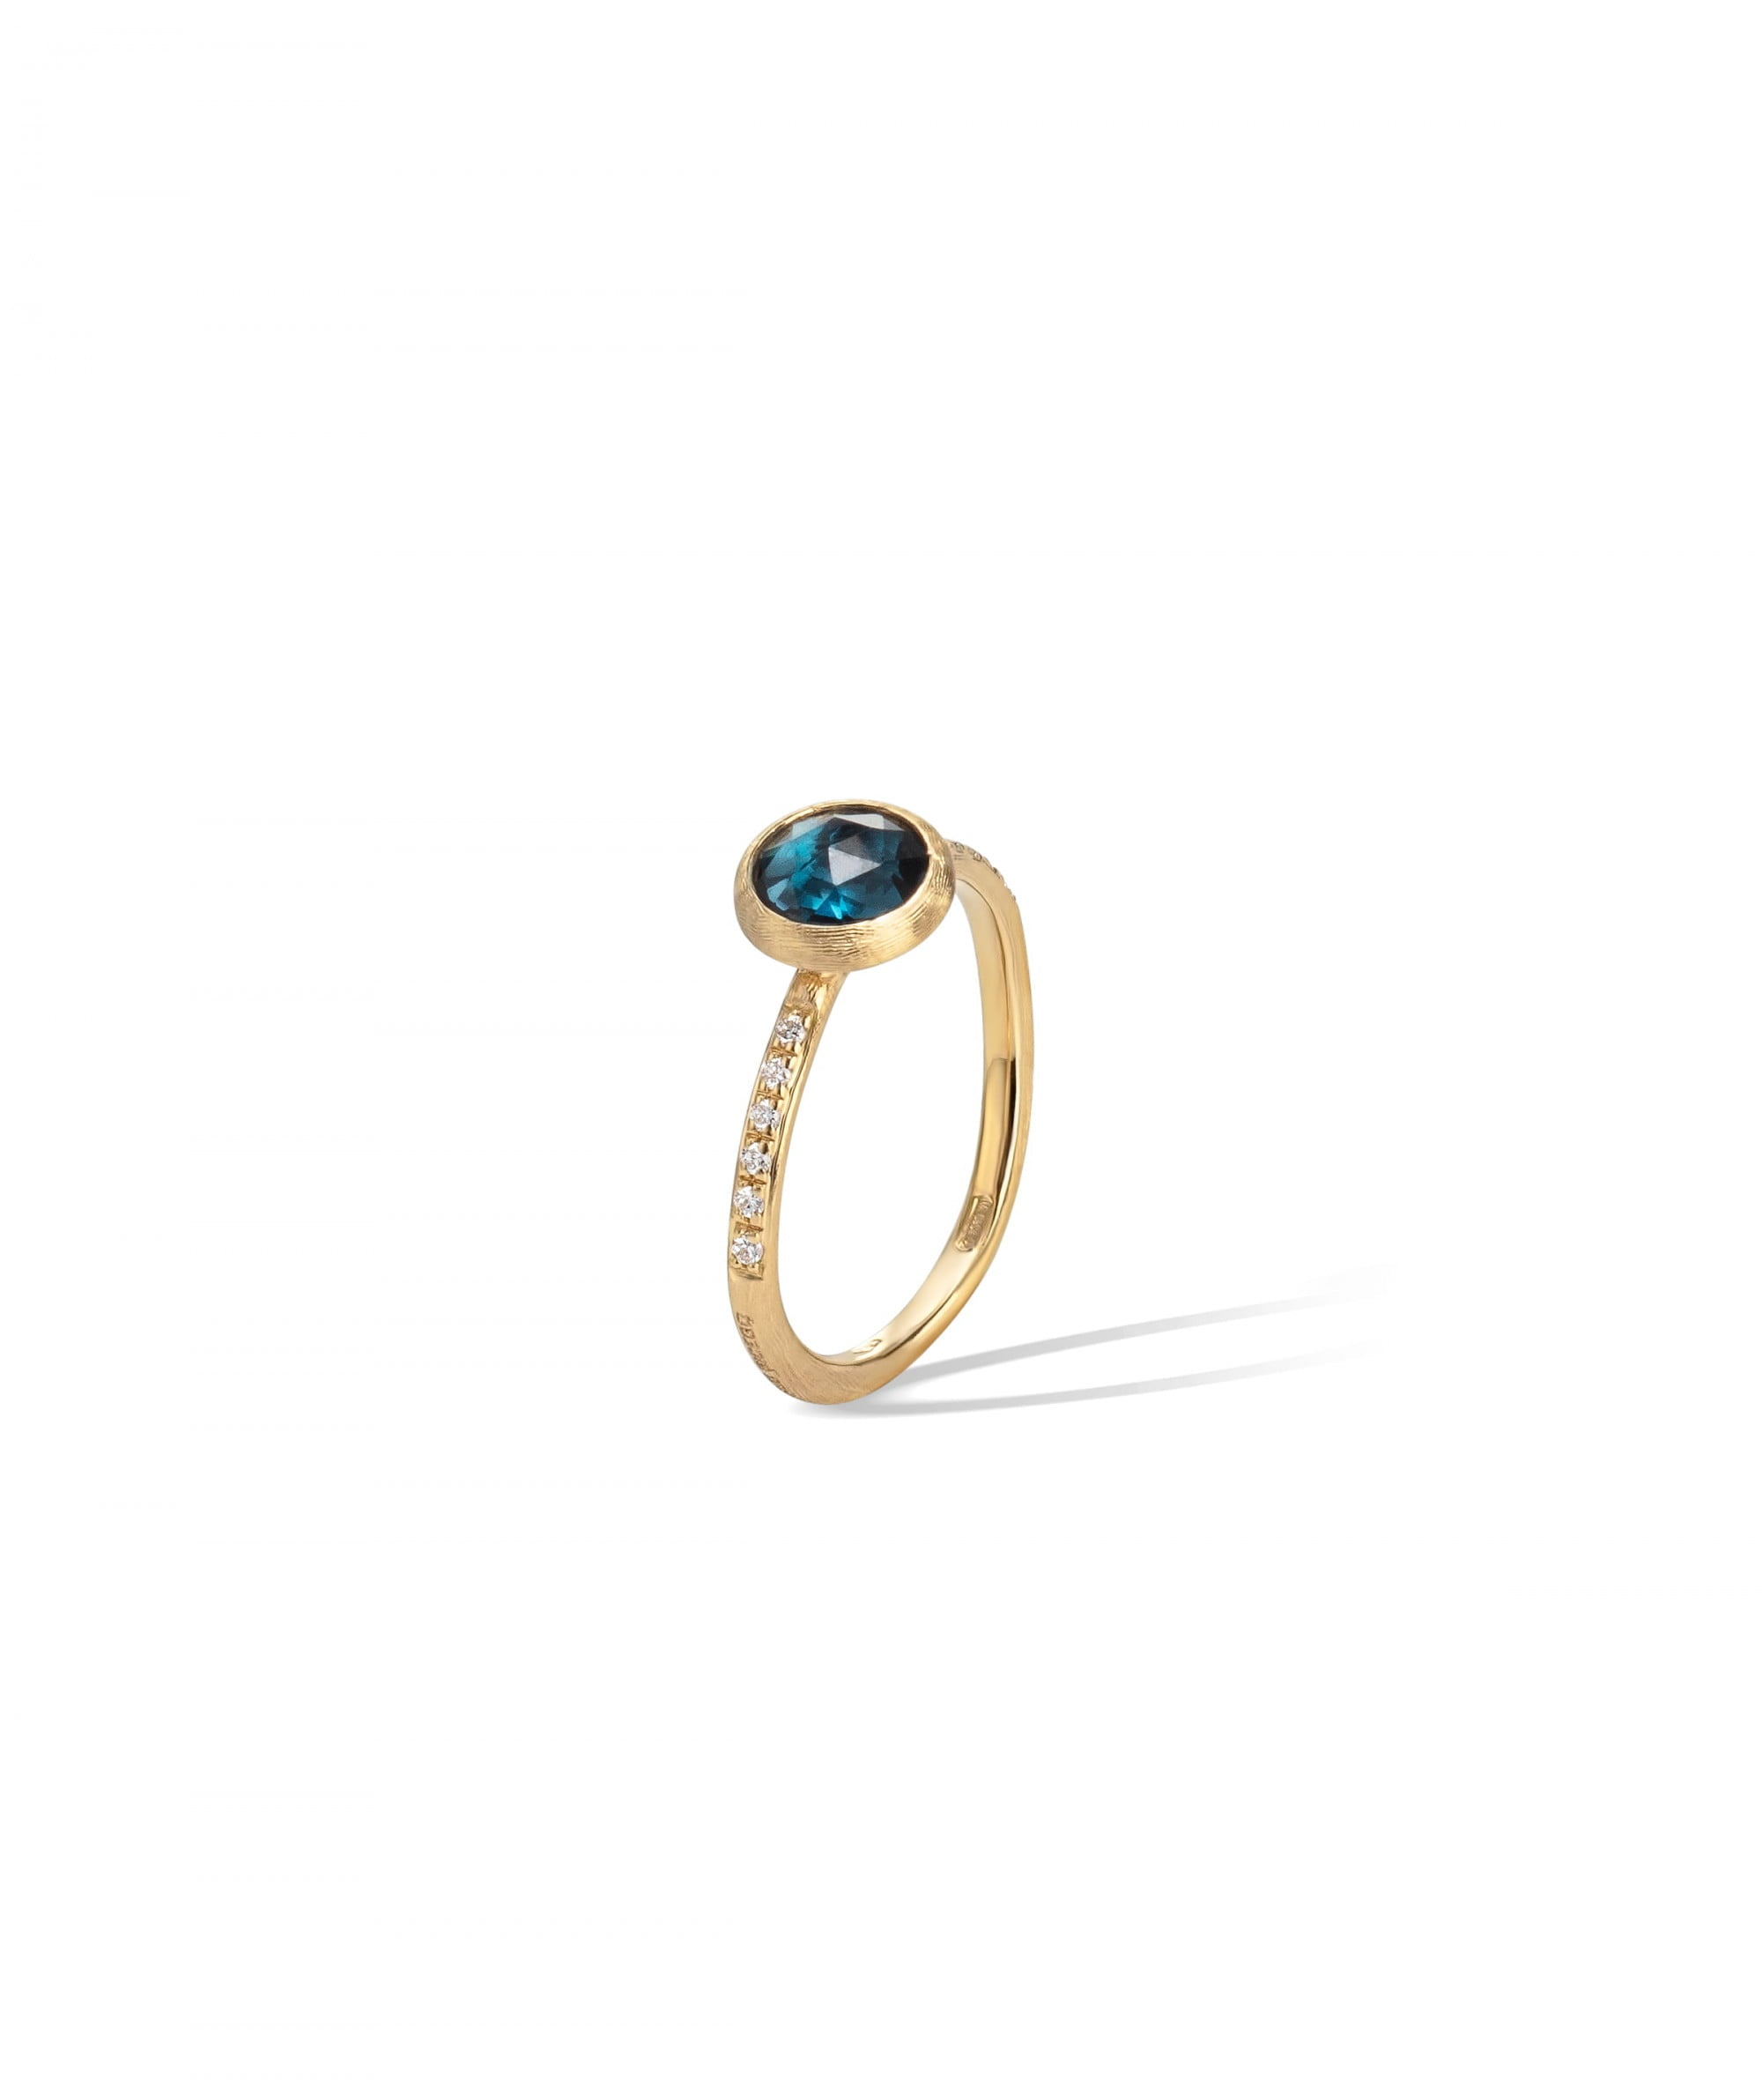 Jaipur Colour Ring in 18k Yellow Gold with London Blue Topaz and Diamonds Mini - Orsini Jewellers NZ